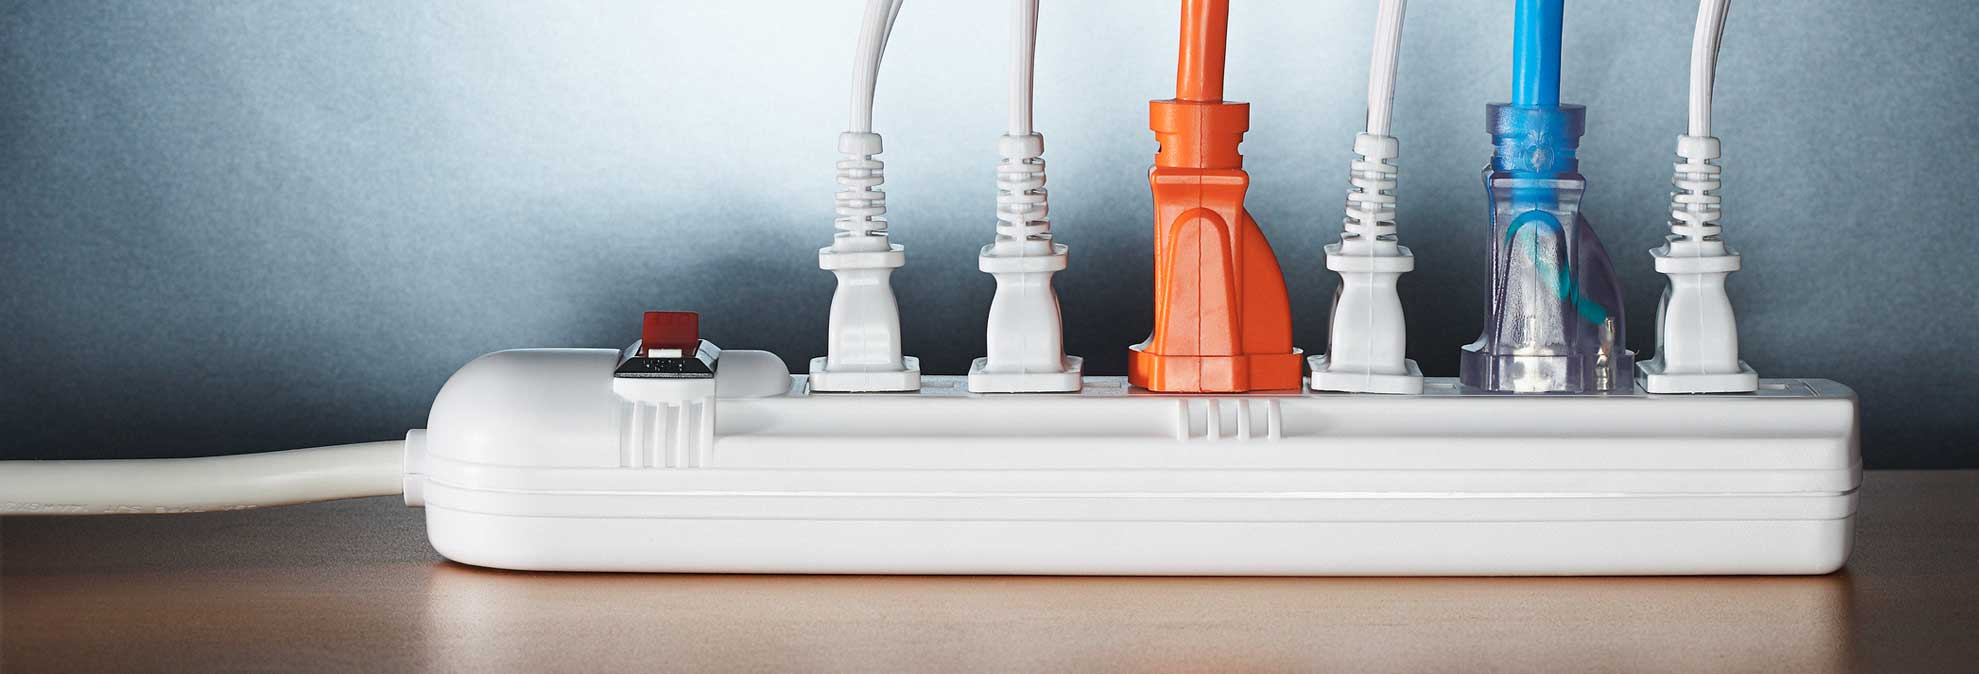 6 Ways to Save Money and Energy at Home - Consumer Reports